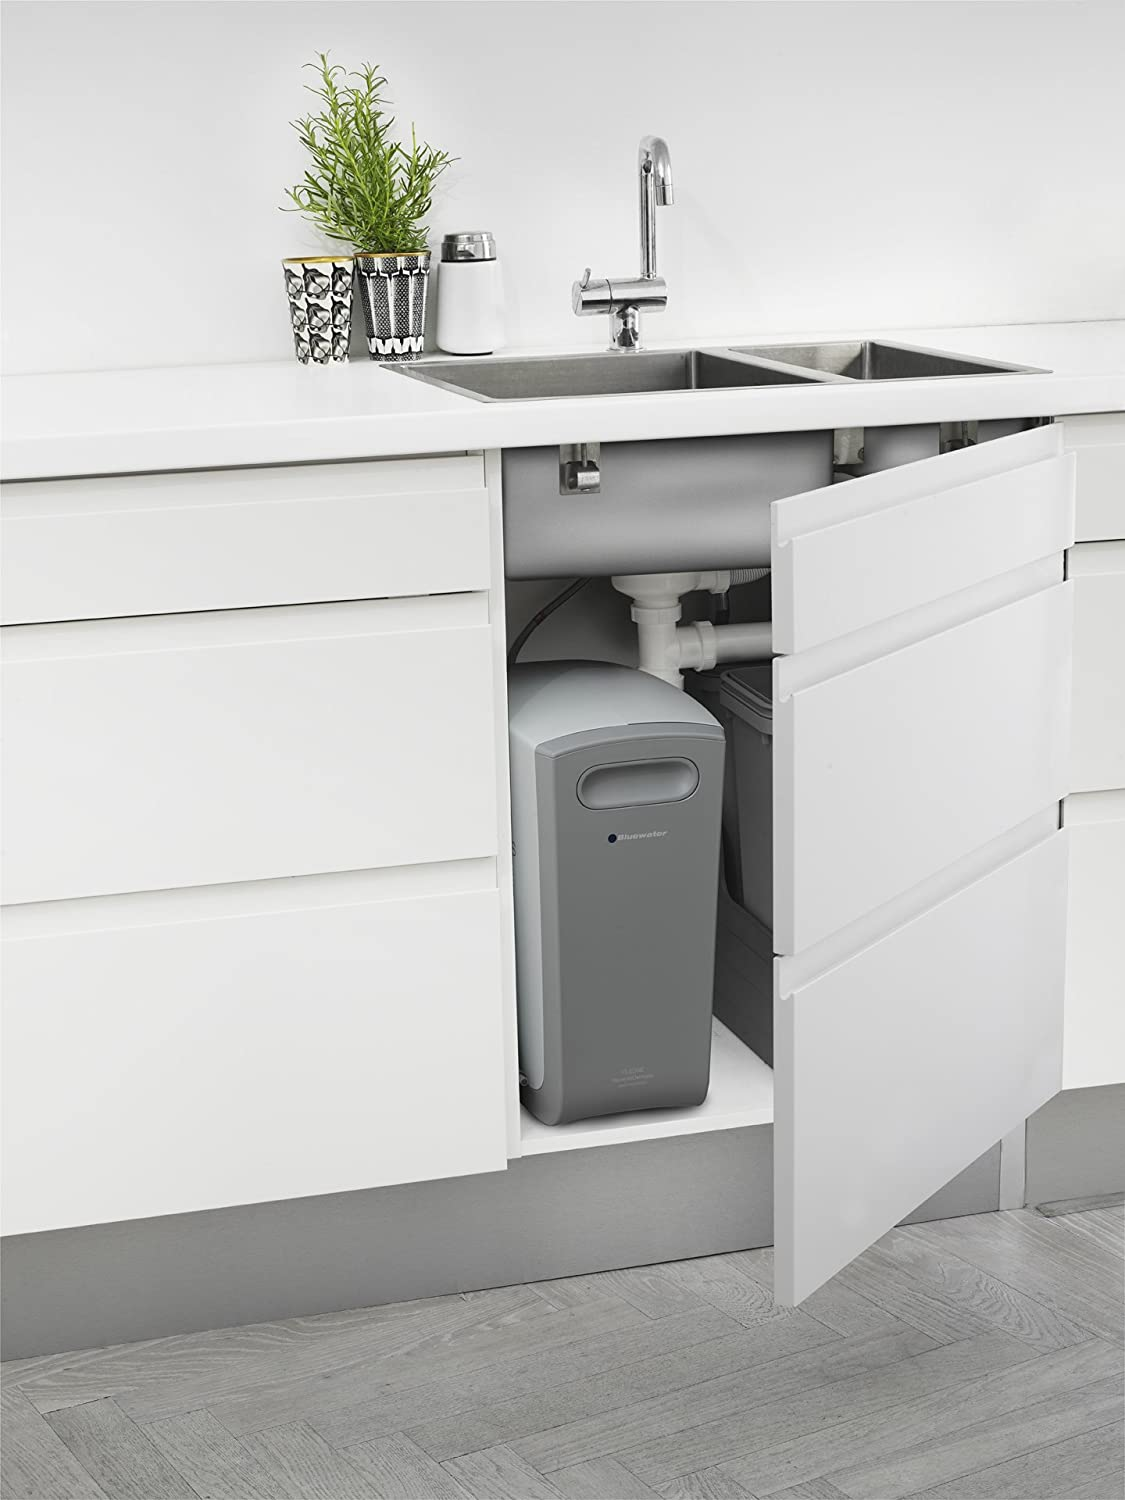 Bluewater Cleone Classic 2 Under Sink Water Purification Filtration System      Amazon.com